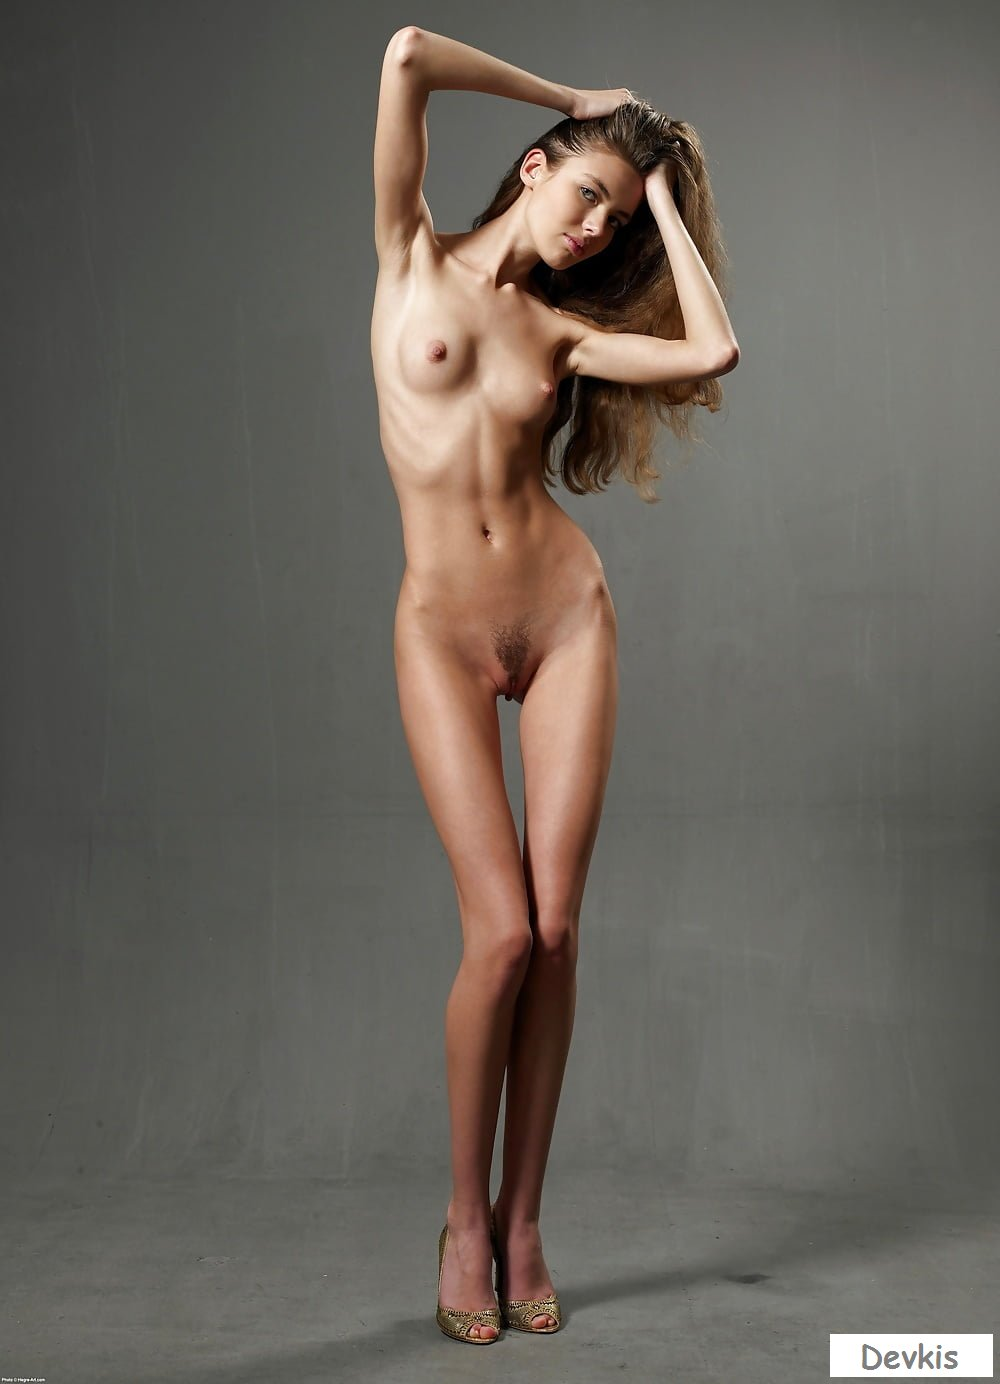 Beautiful skinny nudes